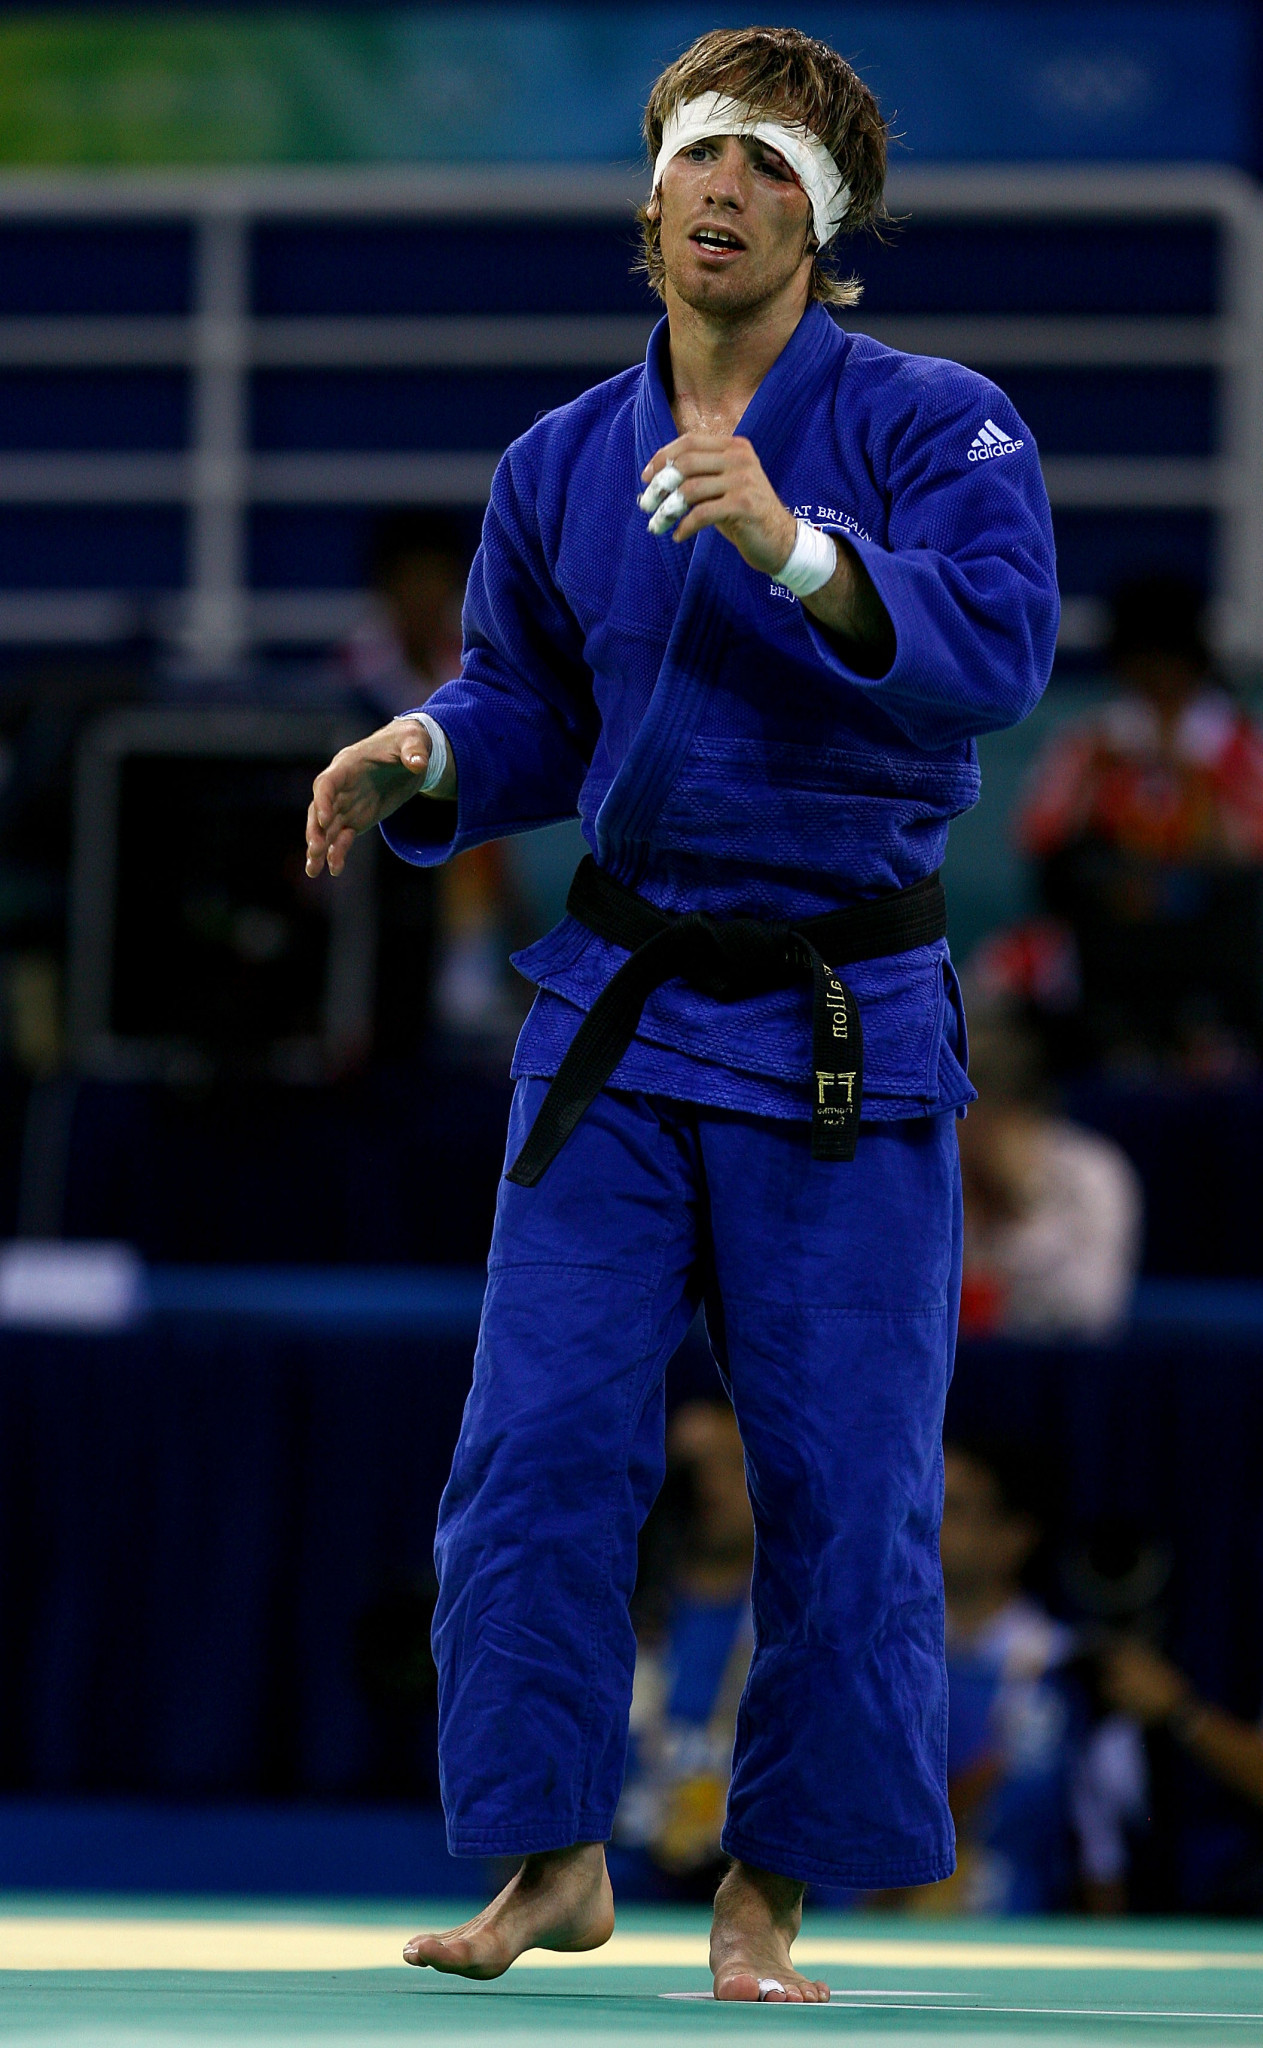 Craig Fallon won World Championship gold in 2005 ©Getty Images